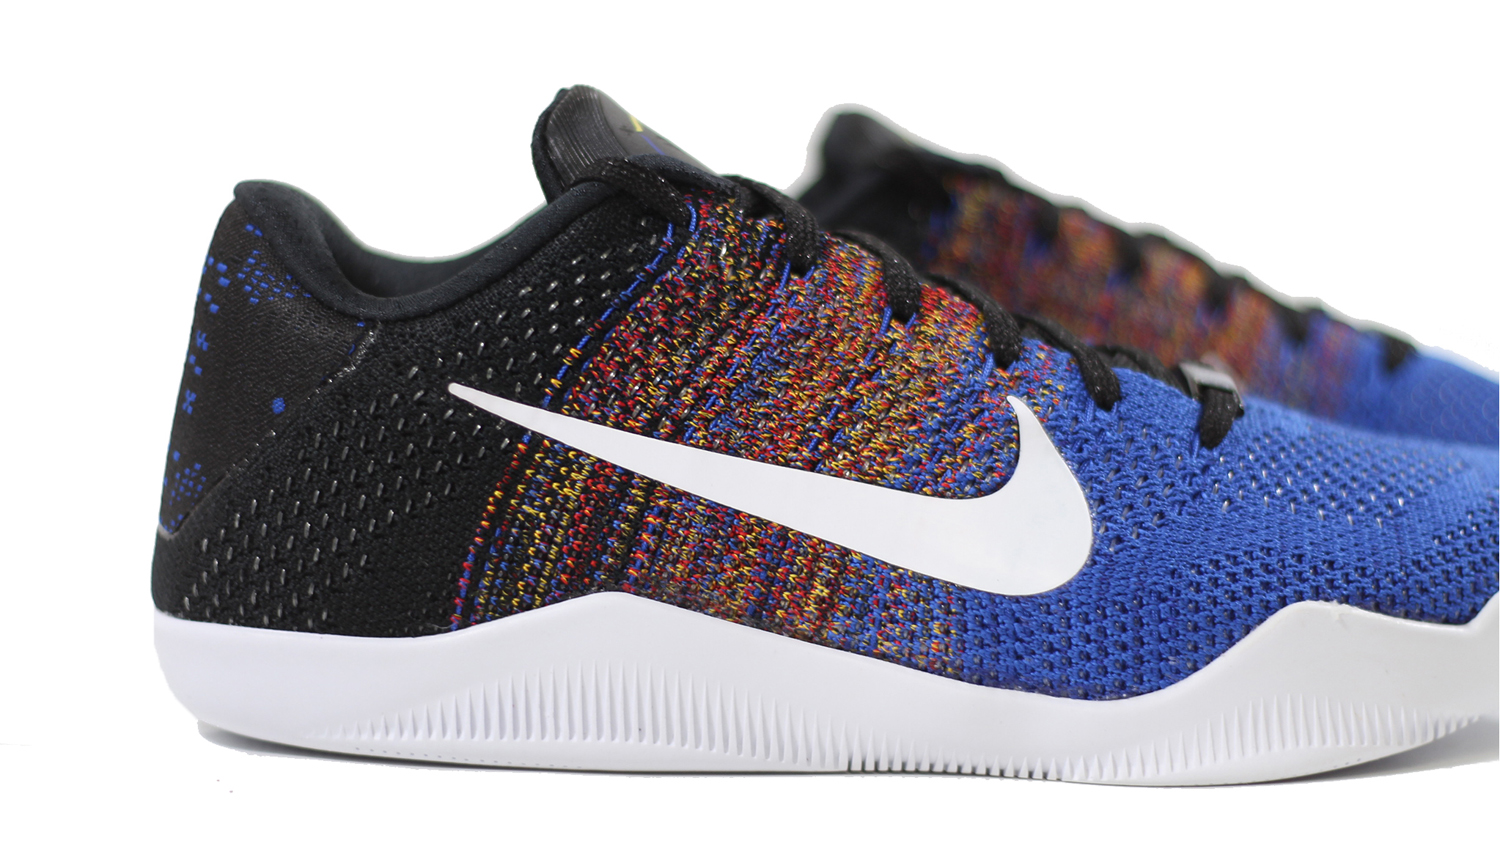 kobe 11 black history month shoes